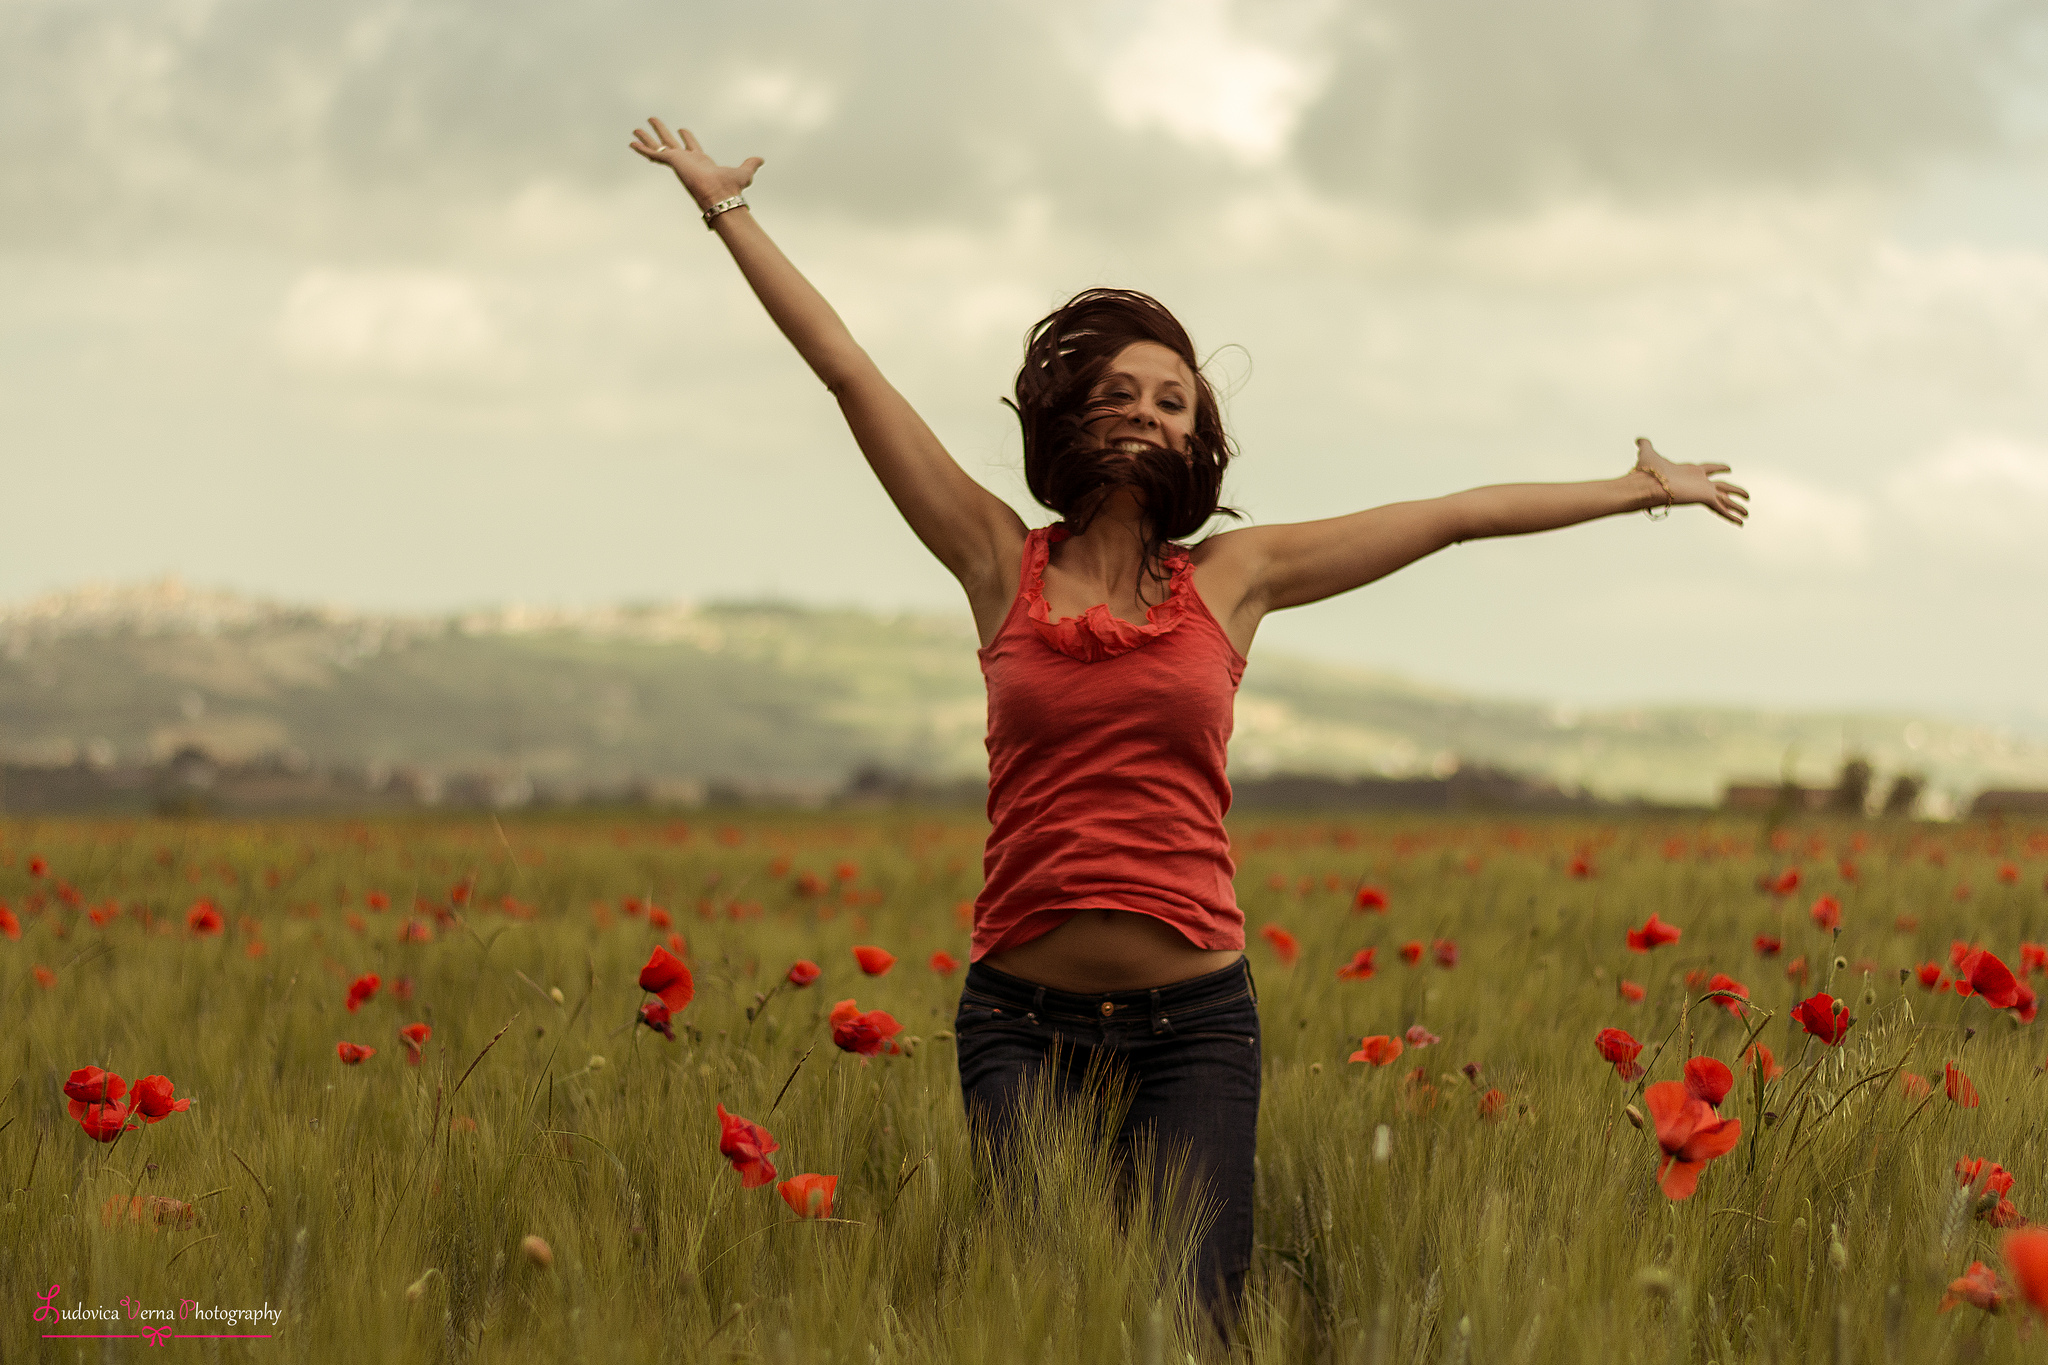 The 16 Rules That Lead You To Happiness